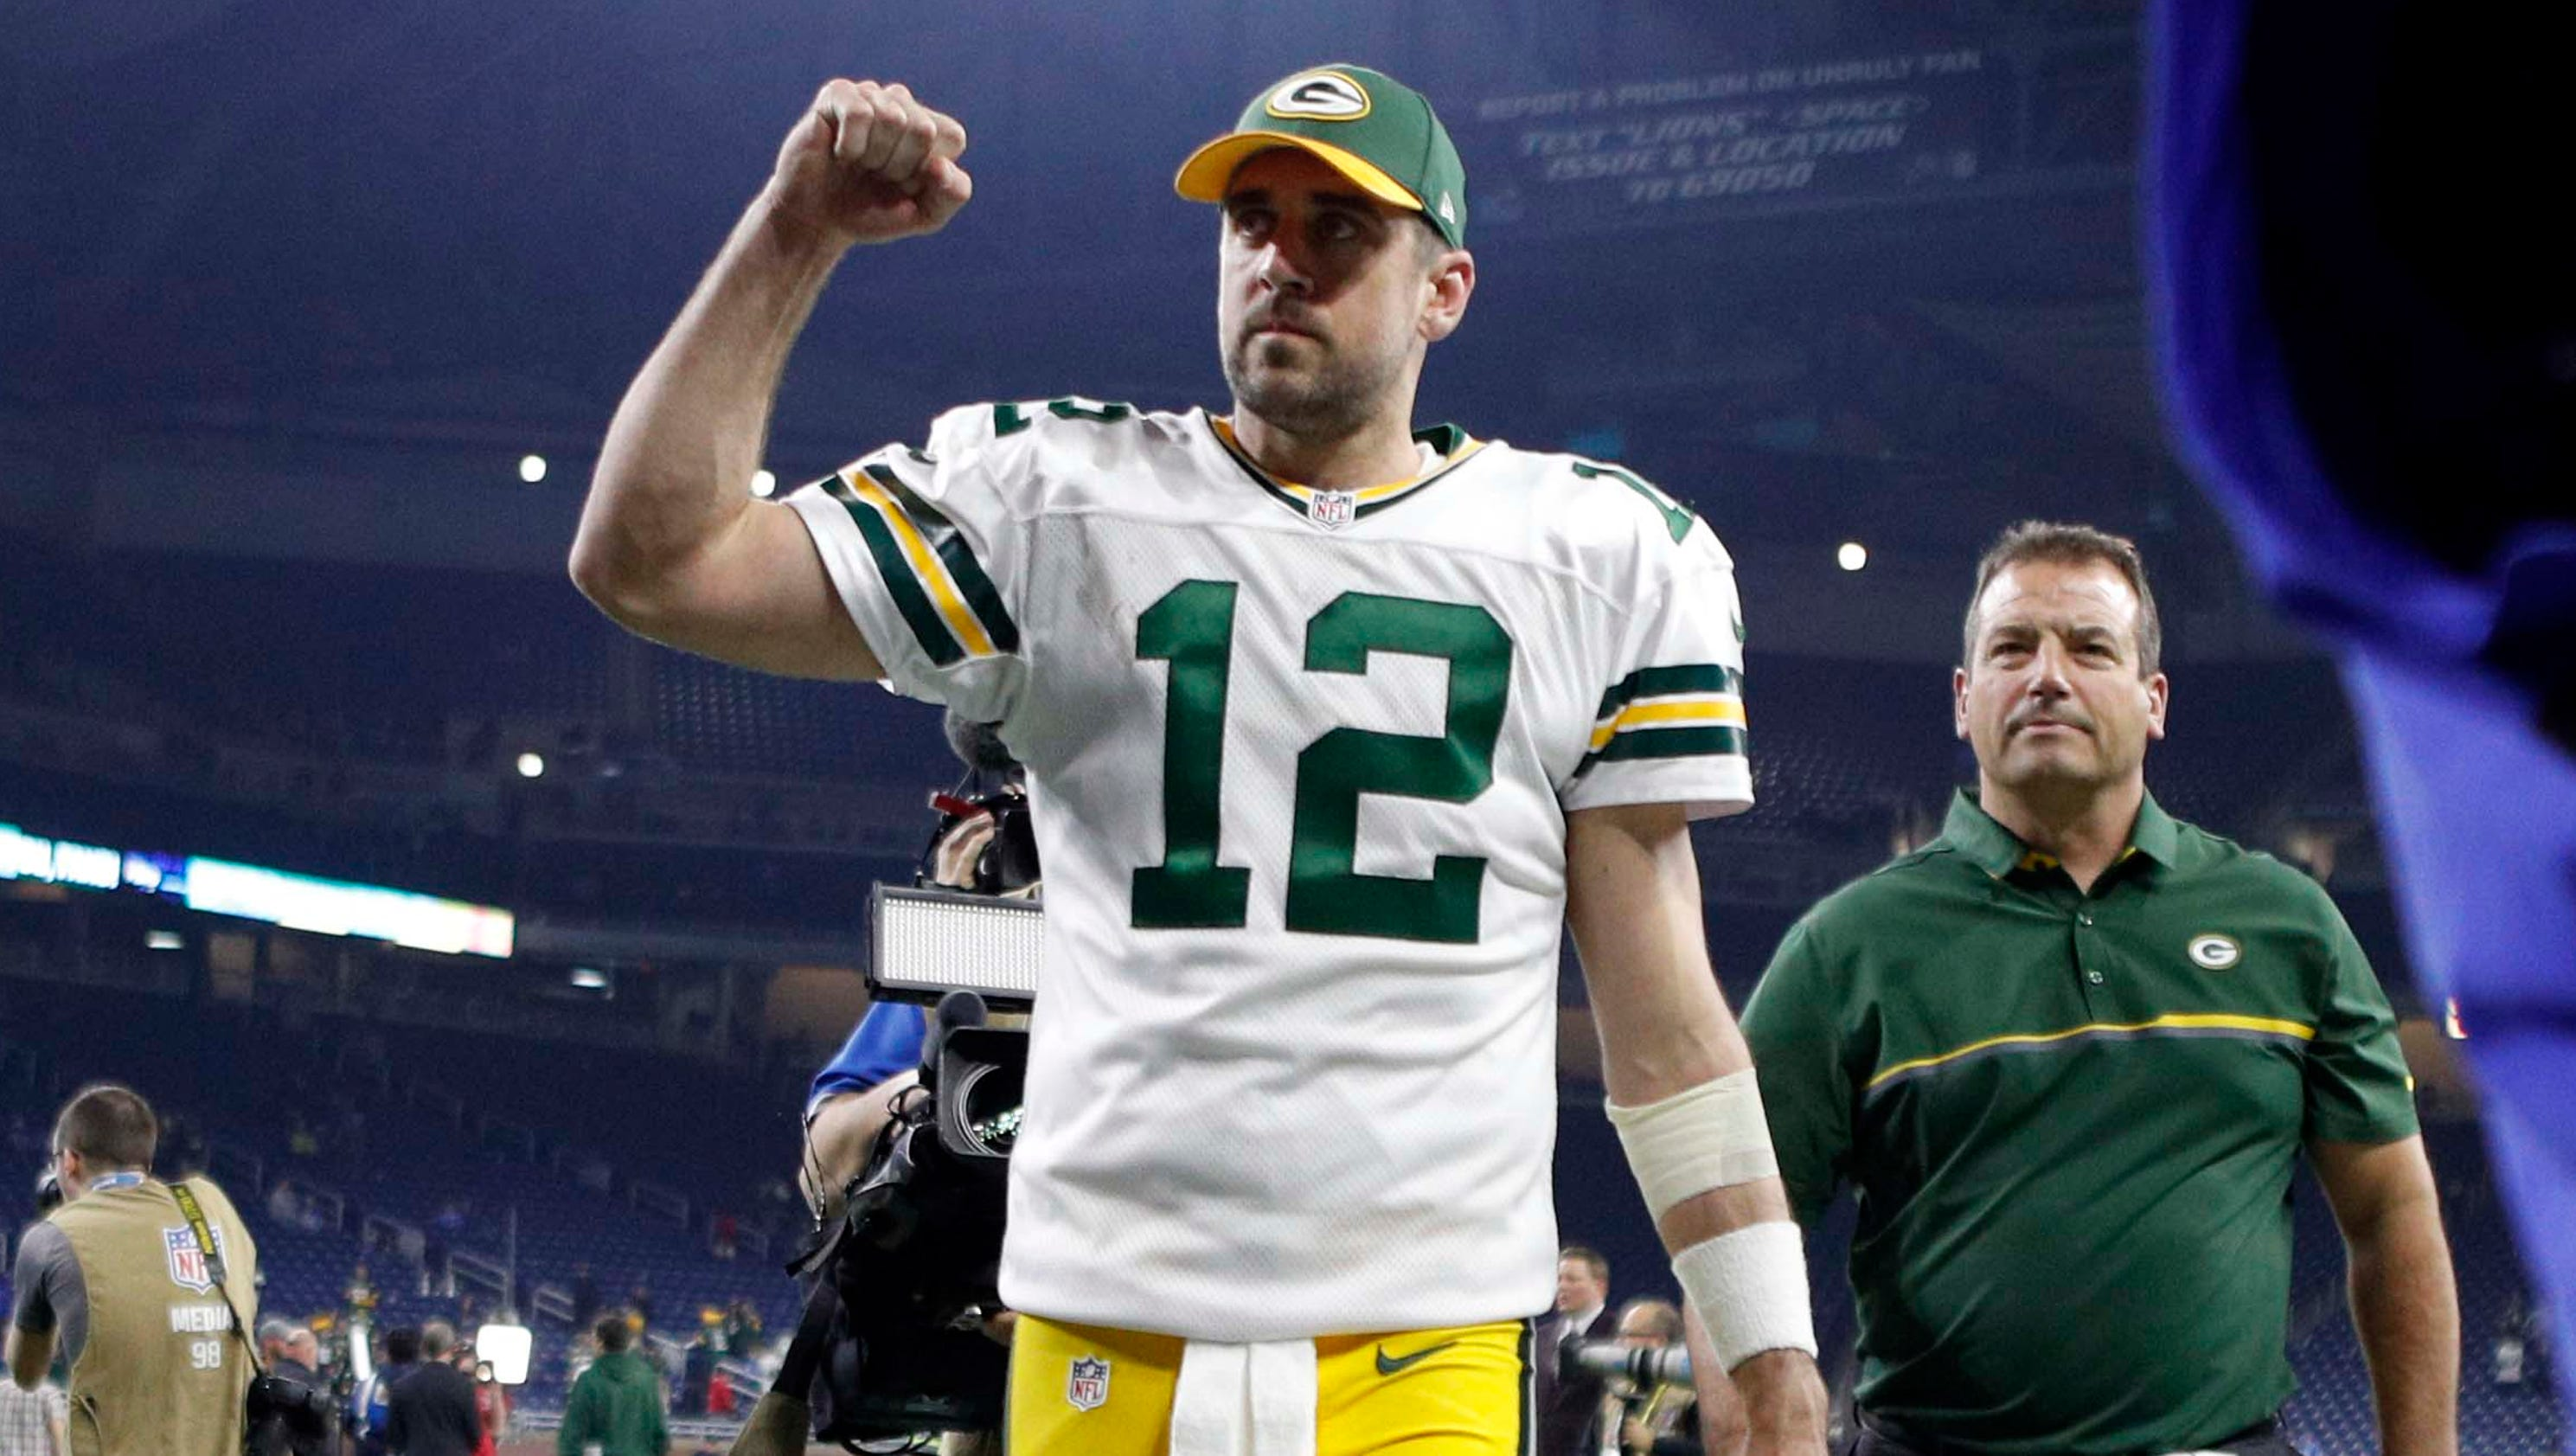 636189704721104796-usp-nfl-green-bay-packers-at-detroit-lions-001